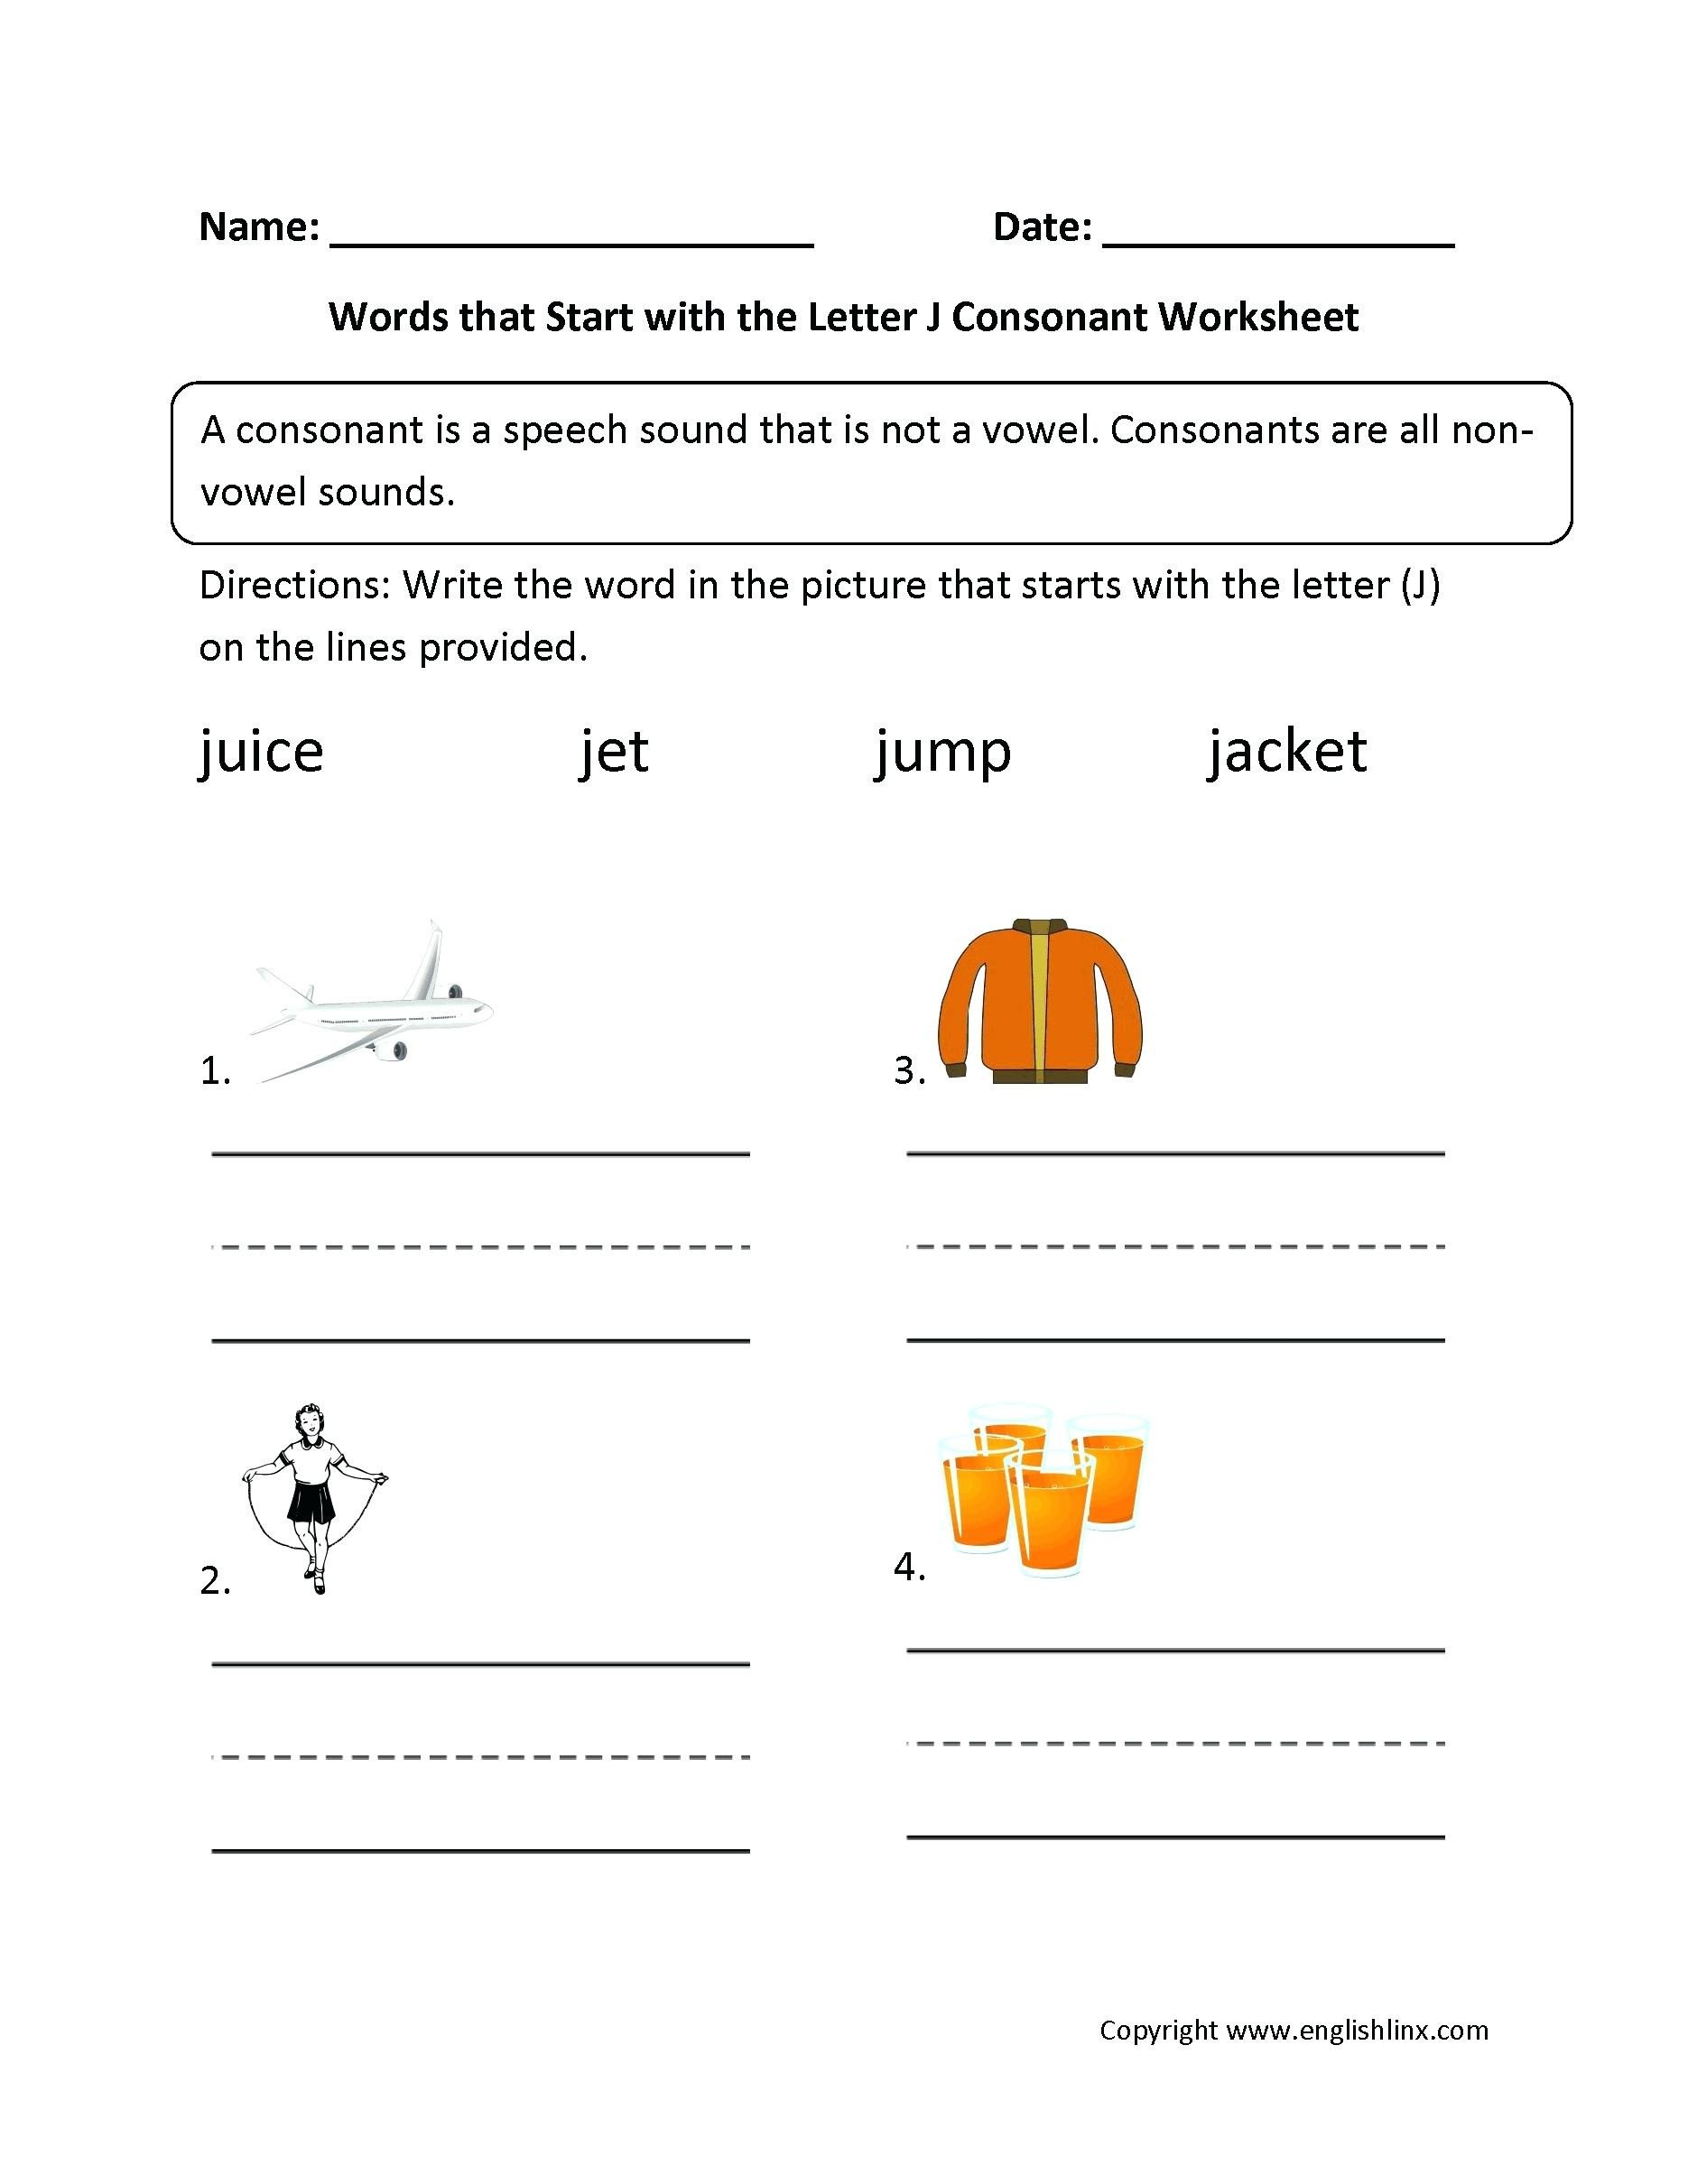 Free Spanish Worksheets for Kindergarten Worksheet Easy Crafts for Small Kids Kindergarten Logo